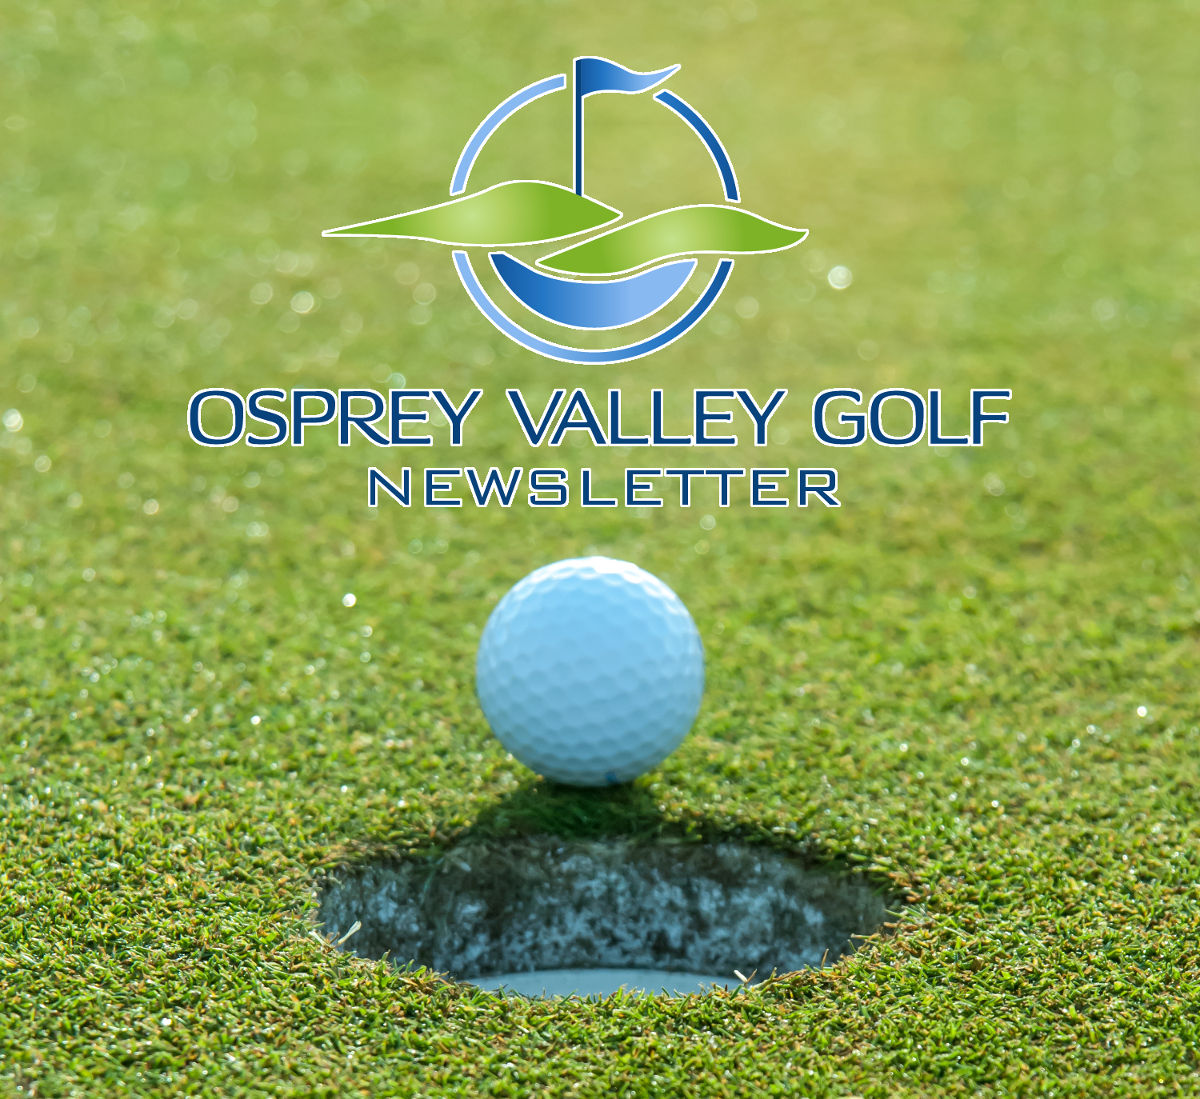 Osprey Valley Golf Newsletter